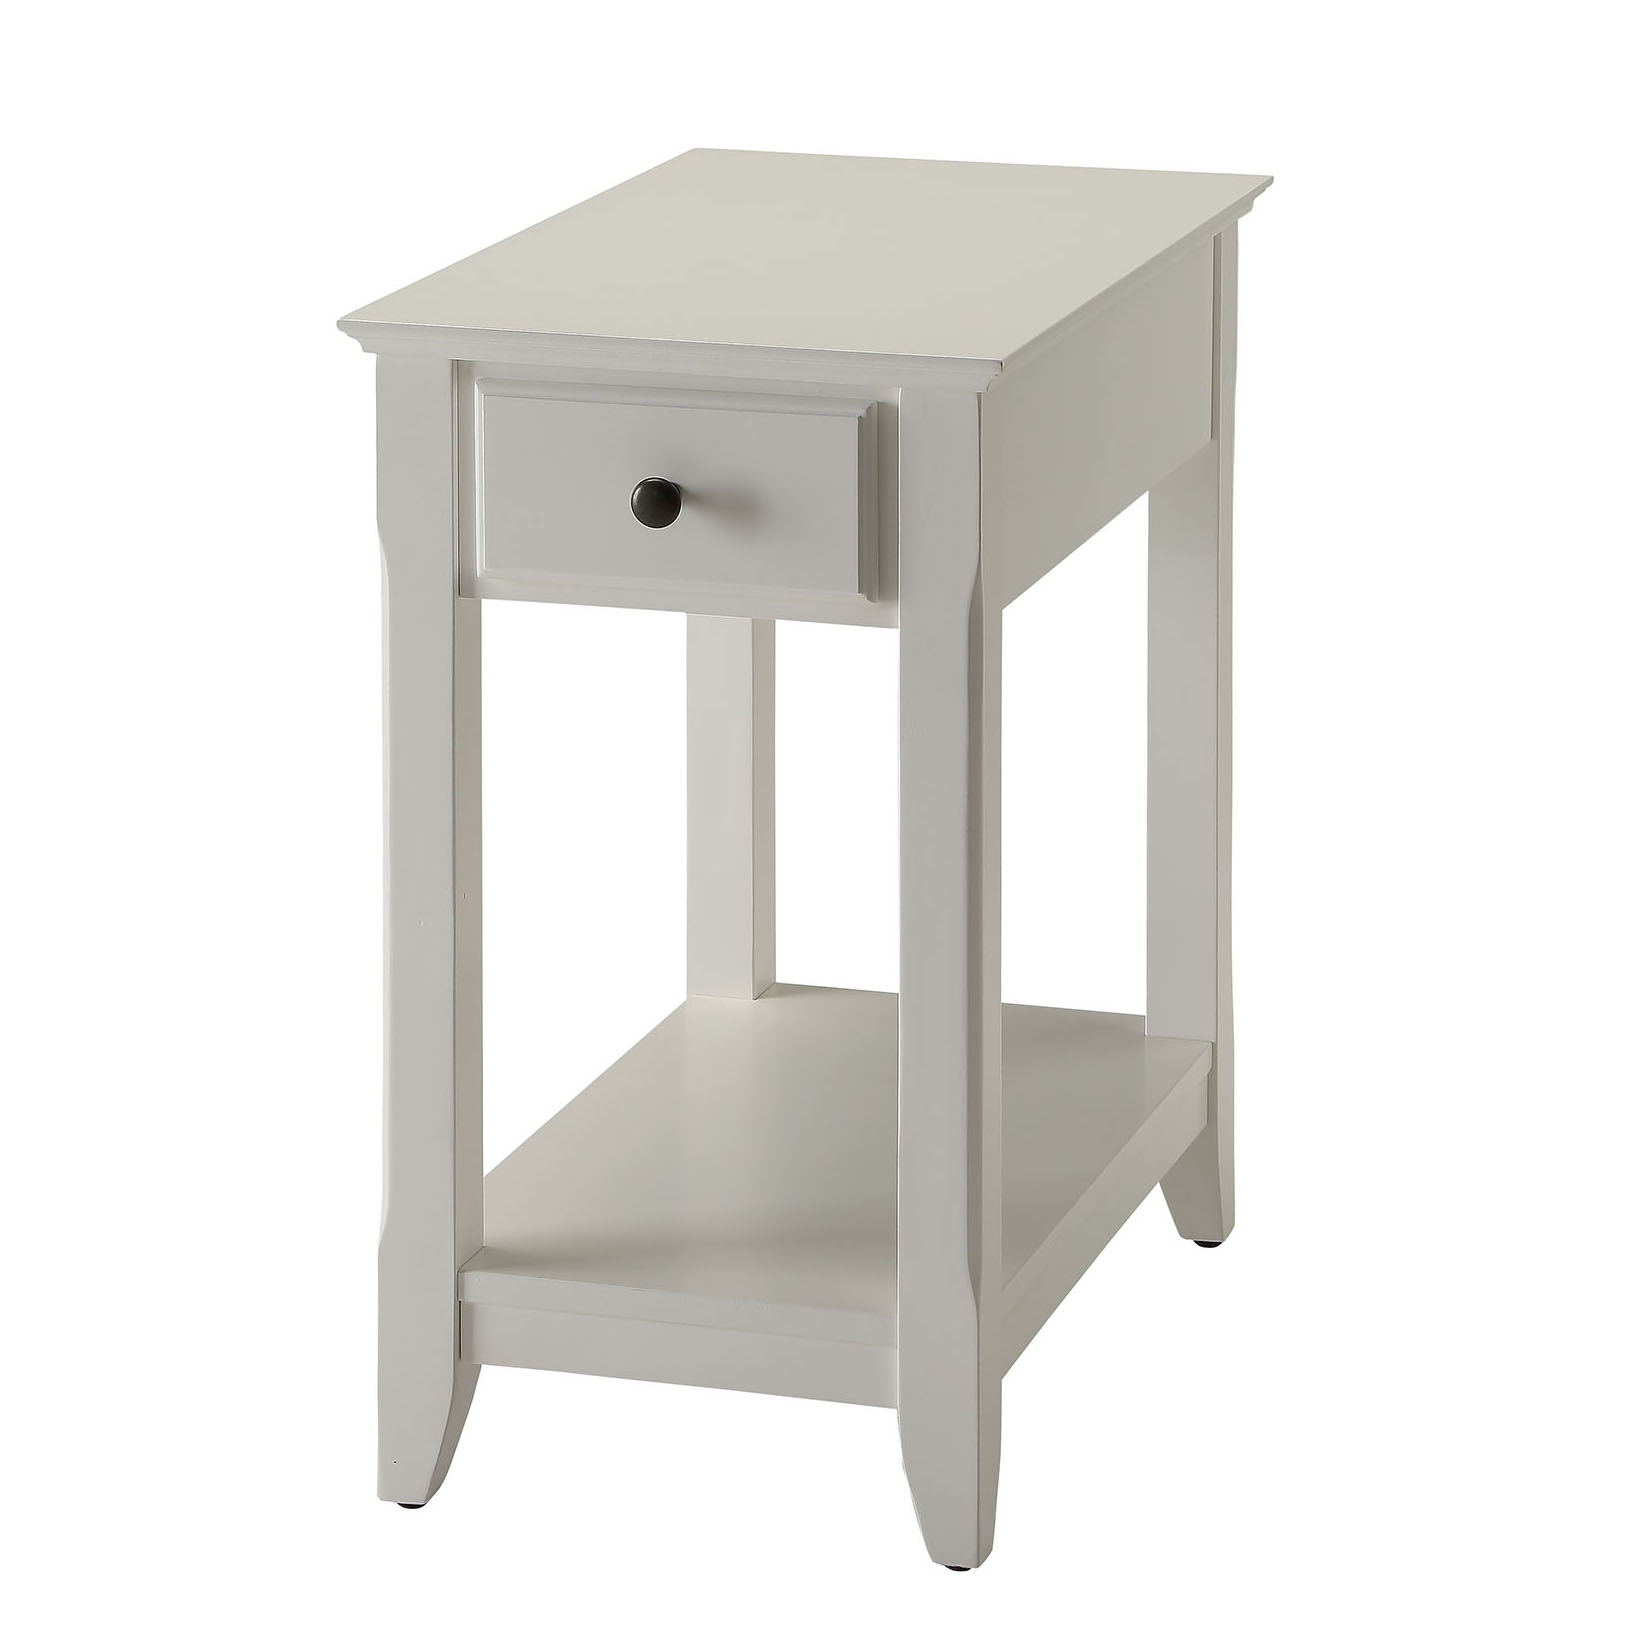 mom urban designs bega wooden accent side table white marble night building barn door shabby chic chairs sage green coffee unique wall clocks lanai furniture gray brown end tables